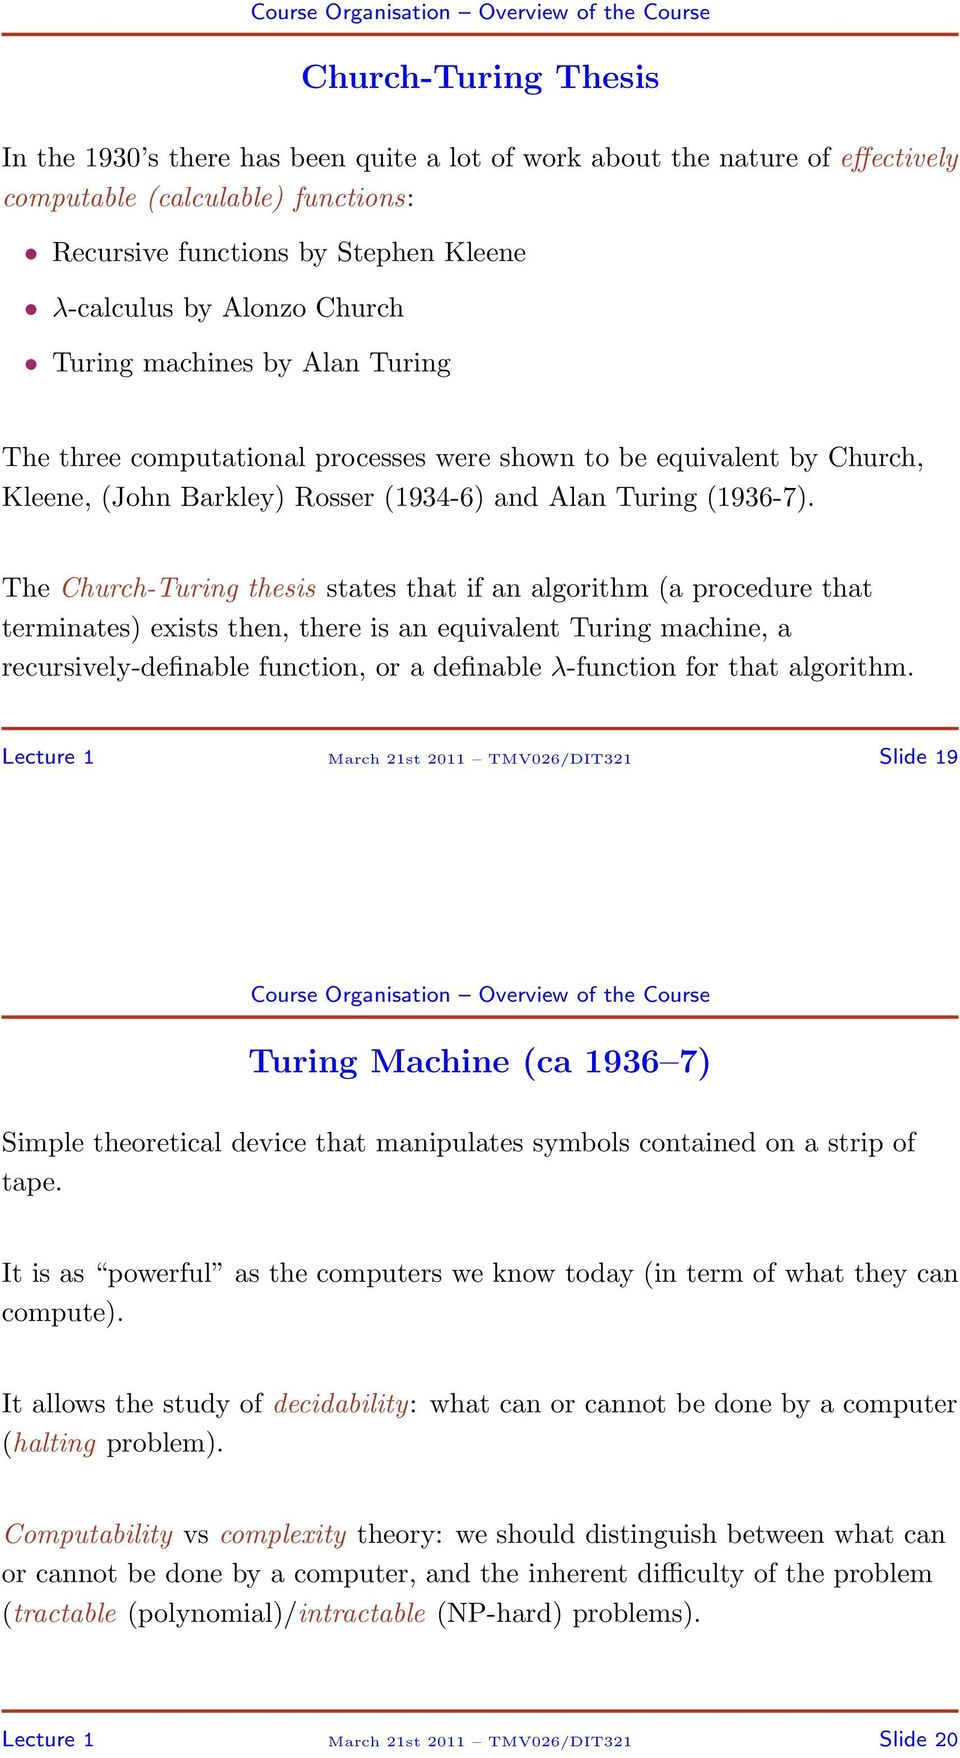 The Church-Turing thesis states that if an algorithm (a procedure that terminates) exists then, there is an equivalent Turing machine, a recursively-definable function, or a definable λ-function for